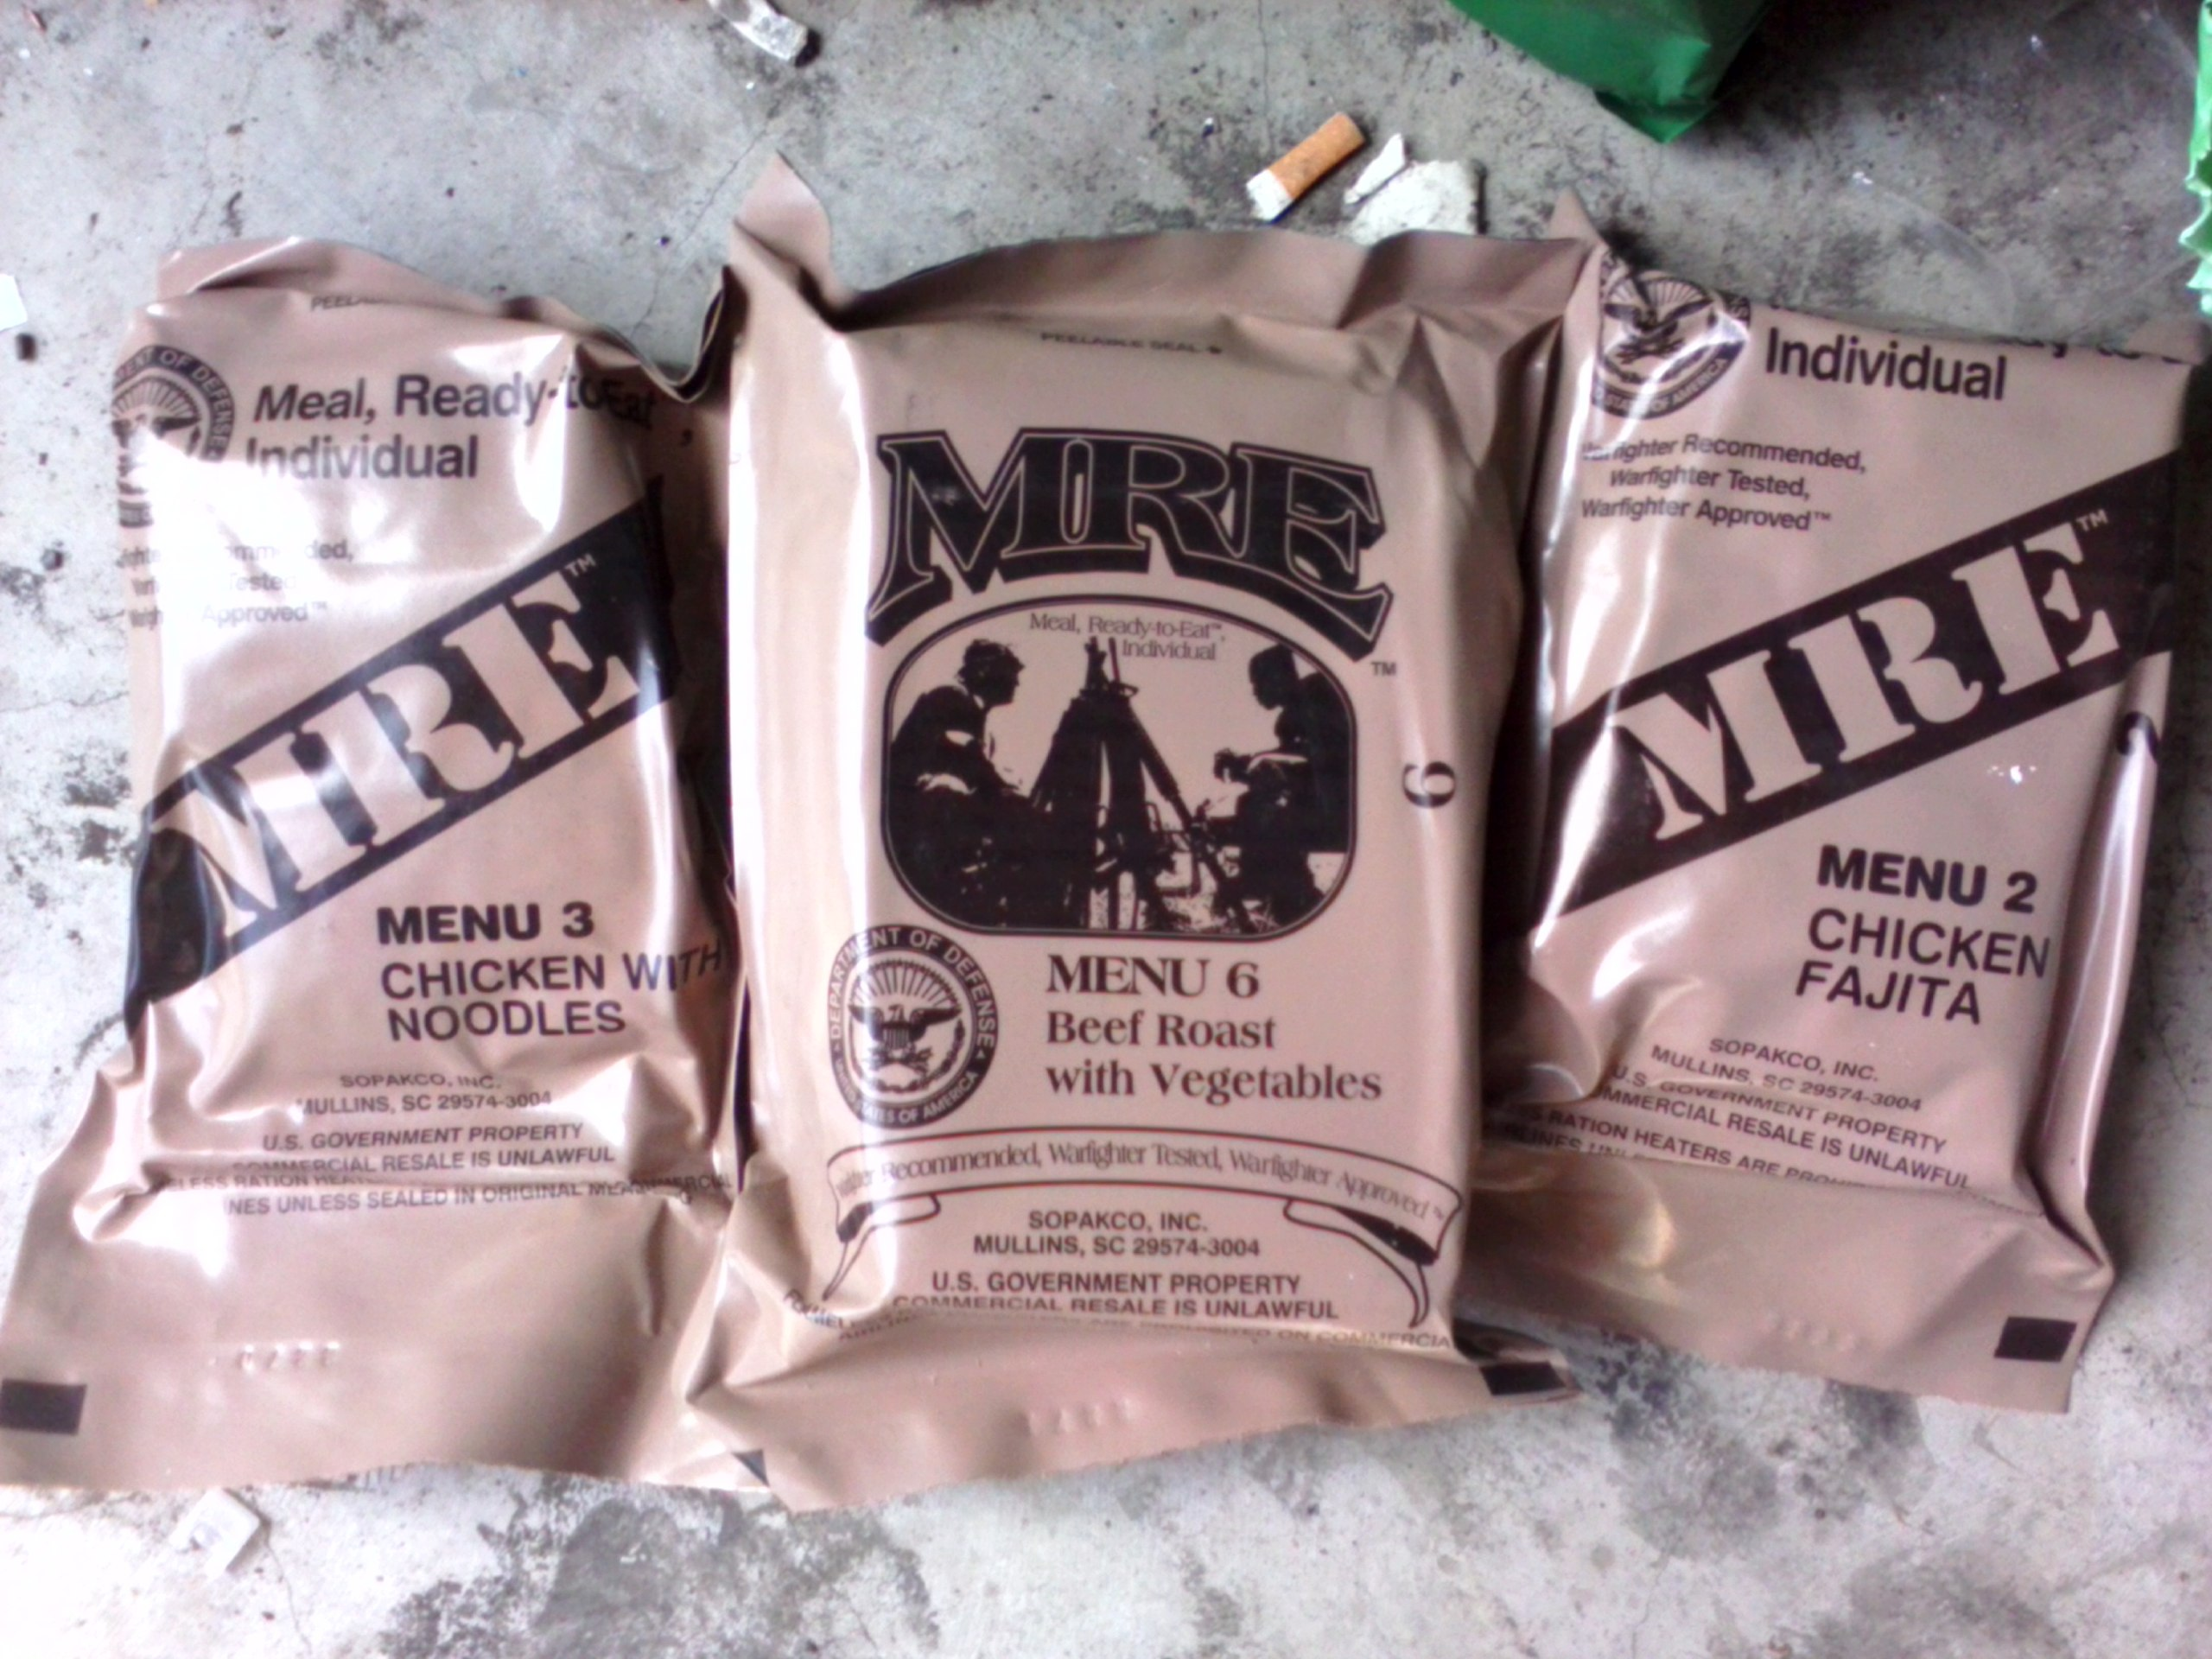 USA MRE, Ukrainian MRE, photo posted by Krivko on September 22 2014